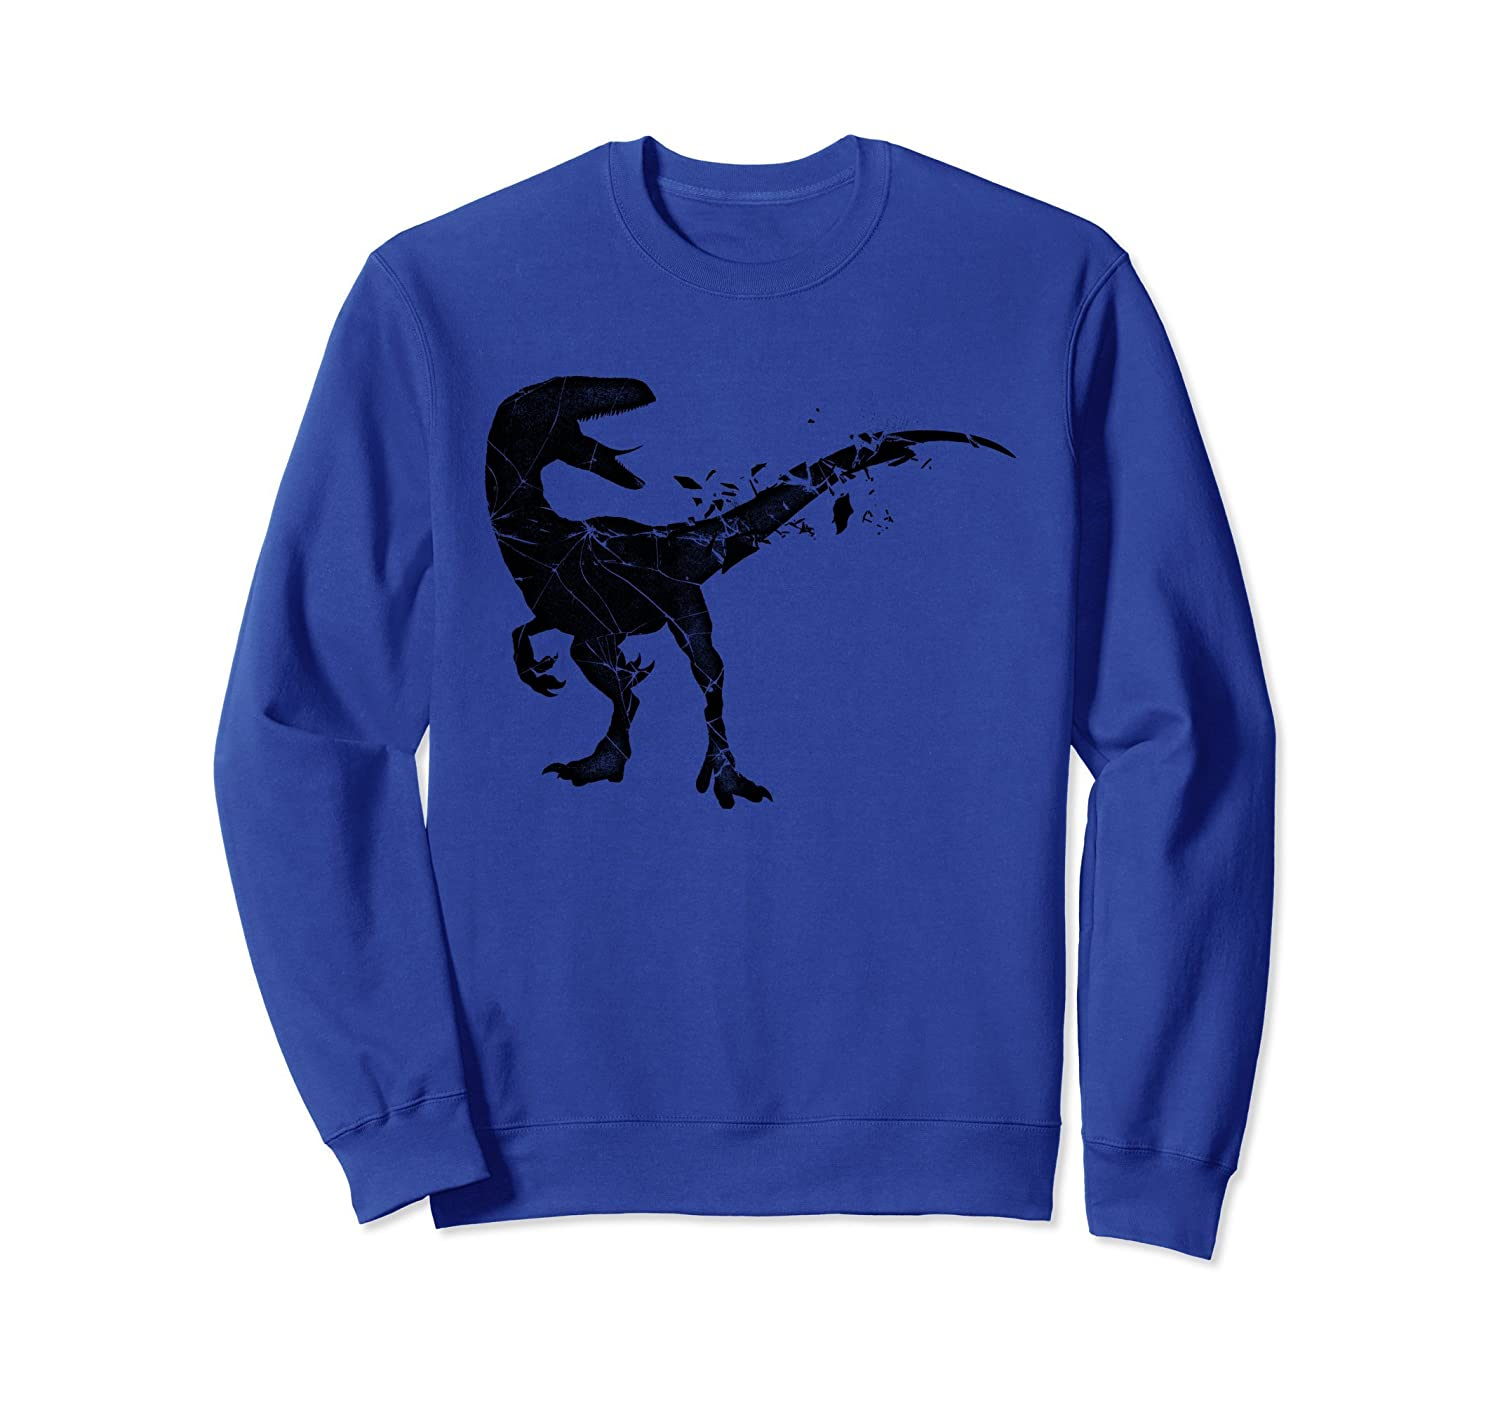 Jurassic World Fallen Kingdom: Raptor Silhouette Sweatshirt-AZP